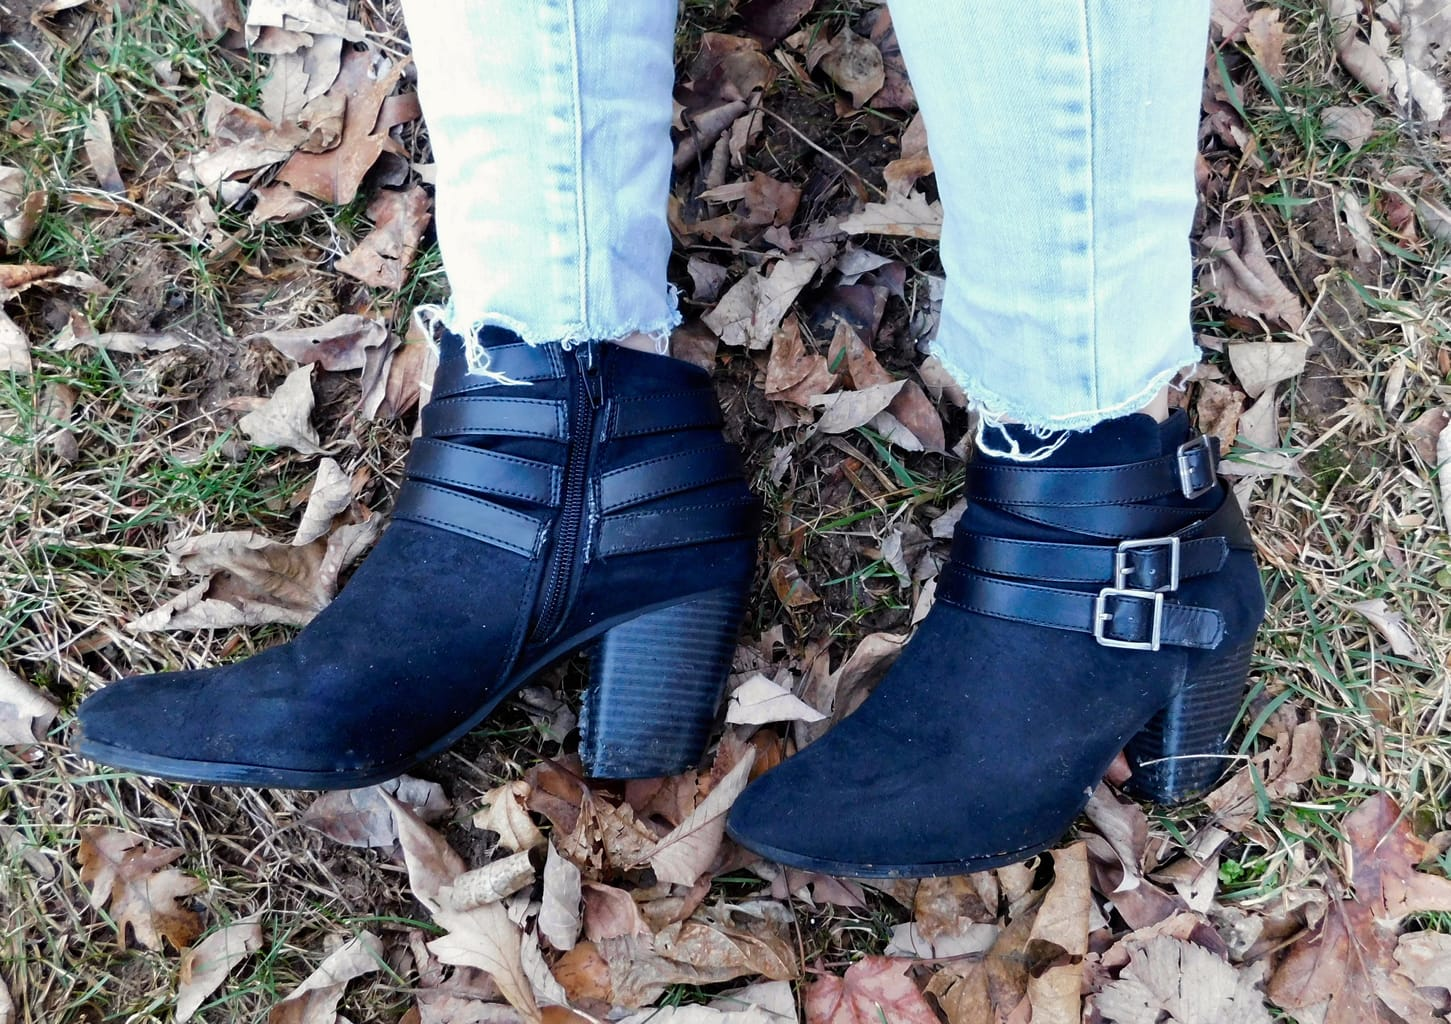 This student wears black chunky-heeled booties with straps and silver buckles.